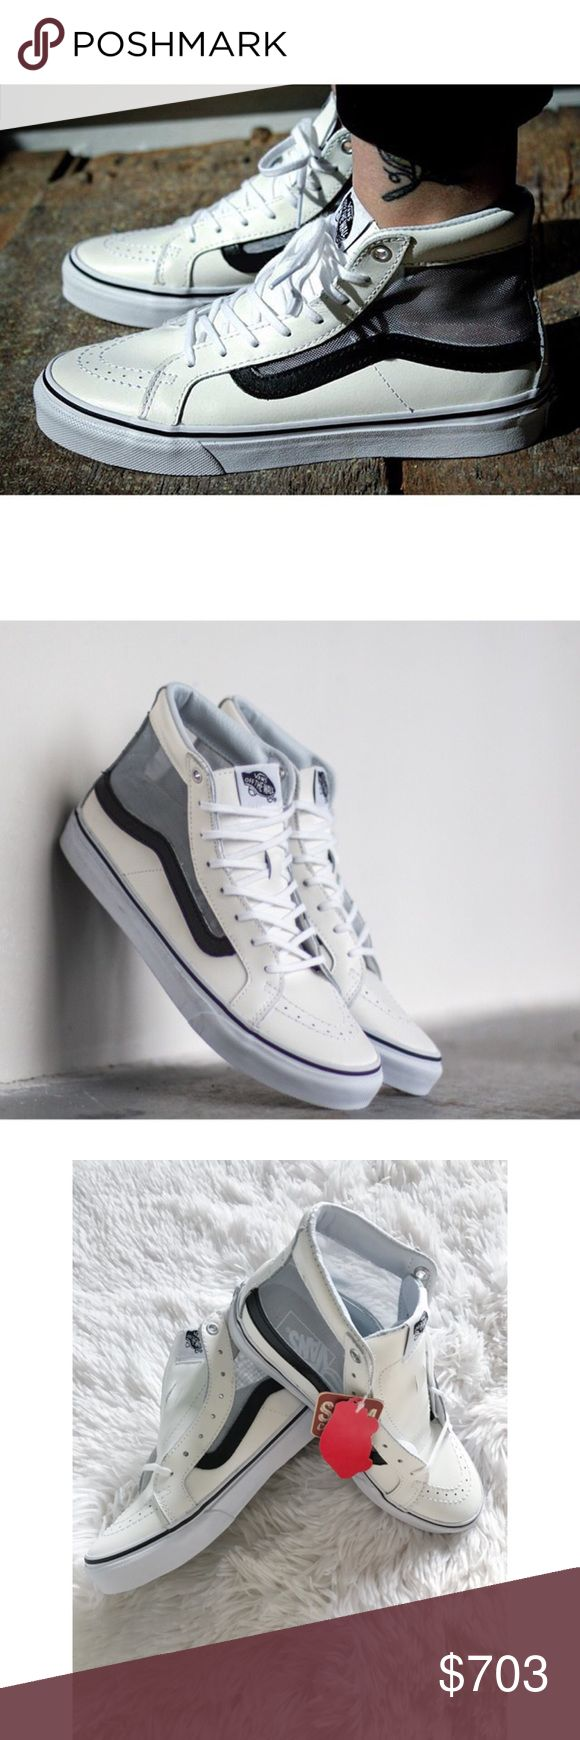 Vans Unisex Sk8-High Slim Leather Mesh Sneaker 🆕 W/ RETAIL TAGS, NO BOX, NEVER WORN ✖️NO TRADES • NO PP • NO MERC@RI  ✔️ADD'L INFO/PICS BY REQUEST ✔️POSTED = AVAILABLE  ✔REASONABLE OFFERS WELCOMED ✔BUNDLE 2+ FOR 10% DISCOUNT Vans Shoes Sneakers